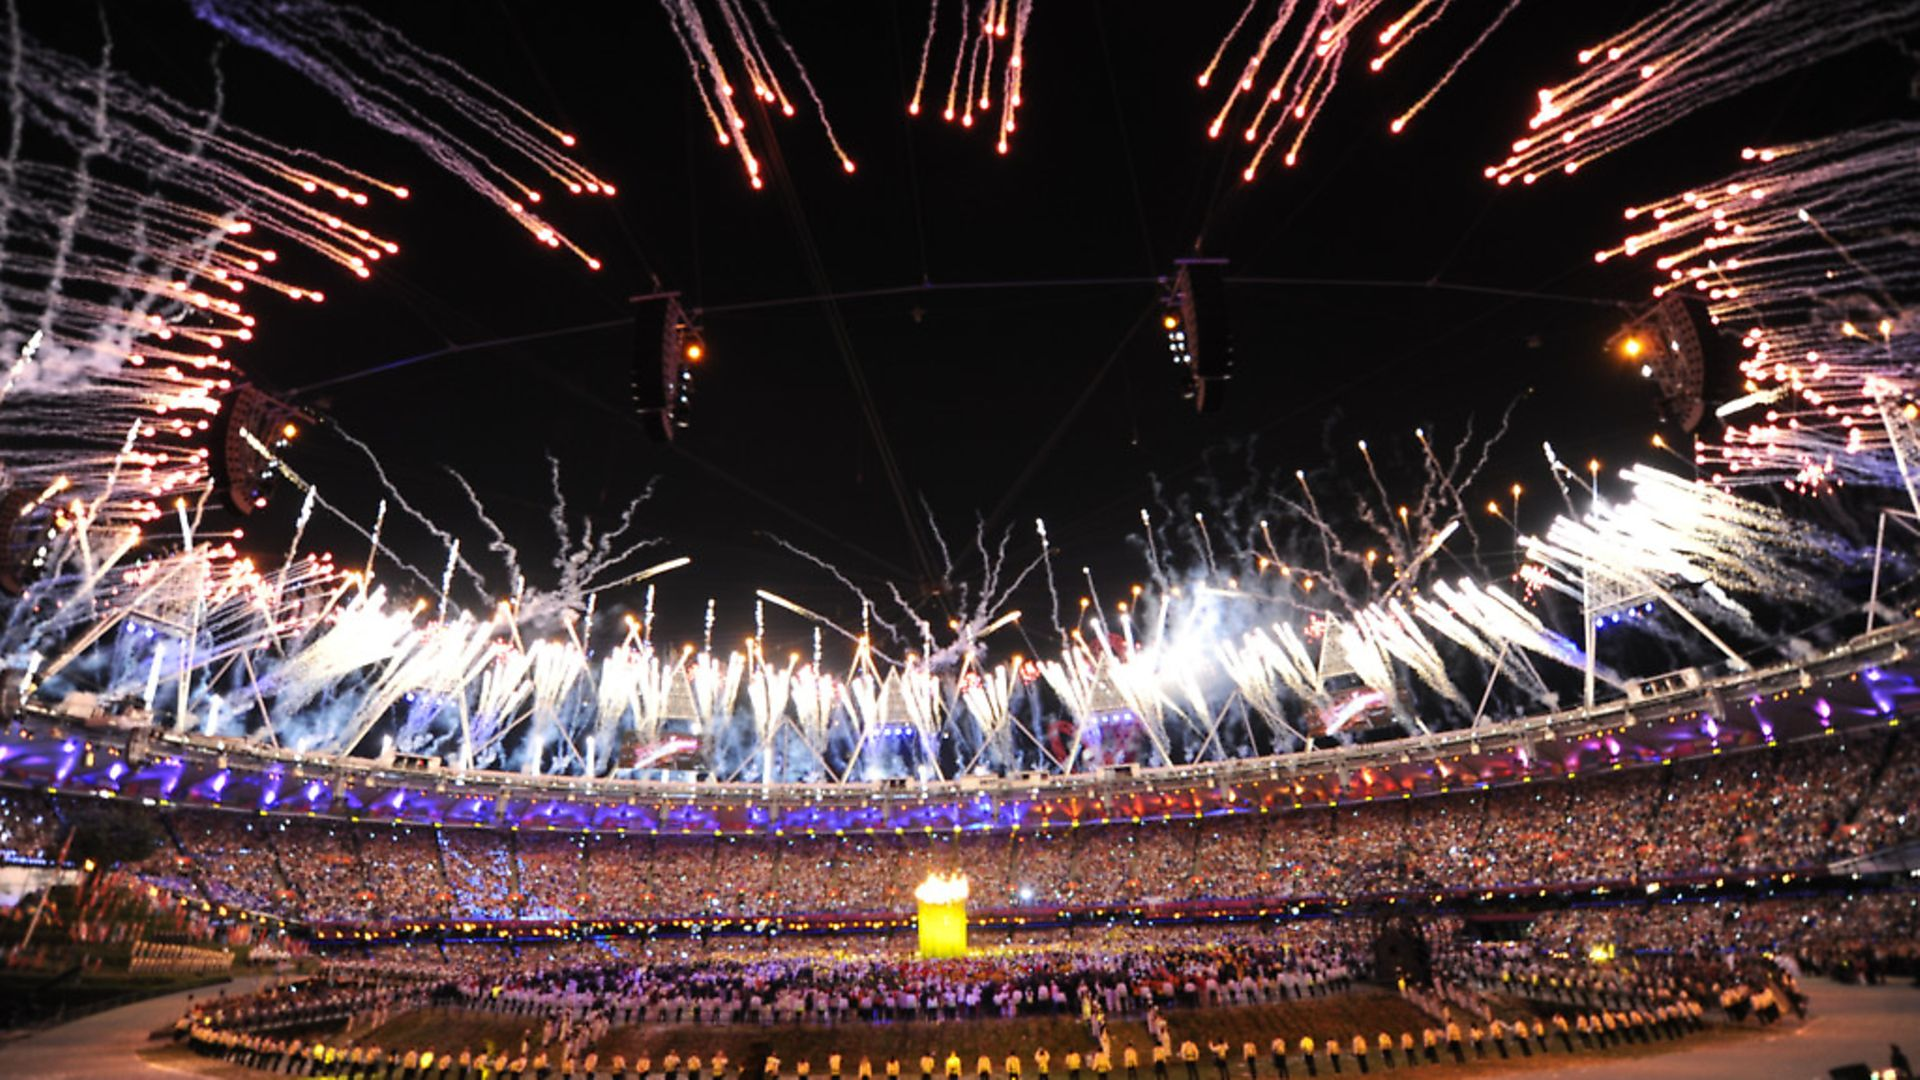 Fireworks during the London Olympic Games 2012 Opening Ceremony at the Olympic Stadium. Picture: ABACA/PA Images - Credit: ABACA/PA Images